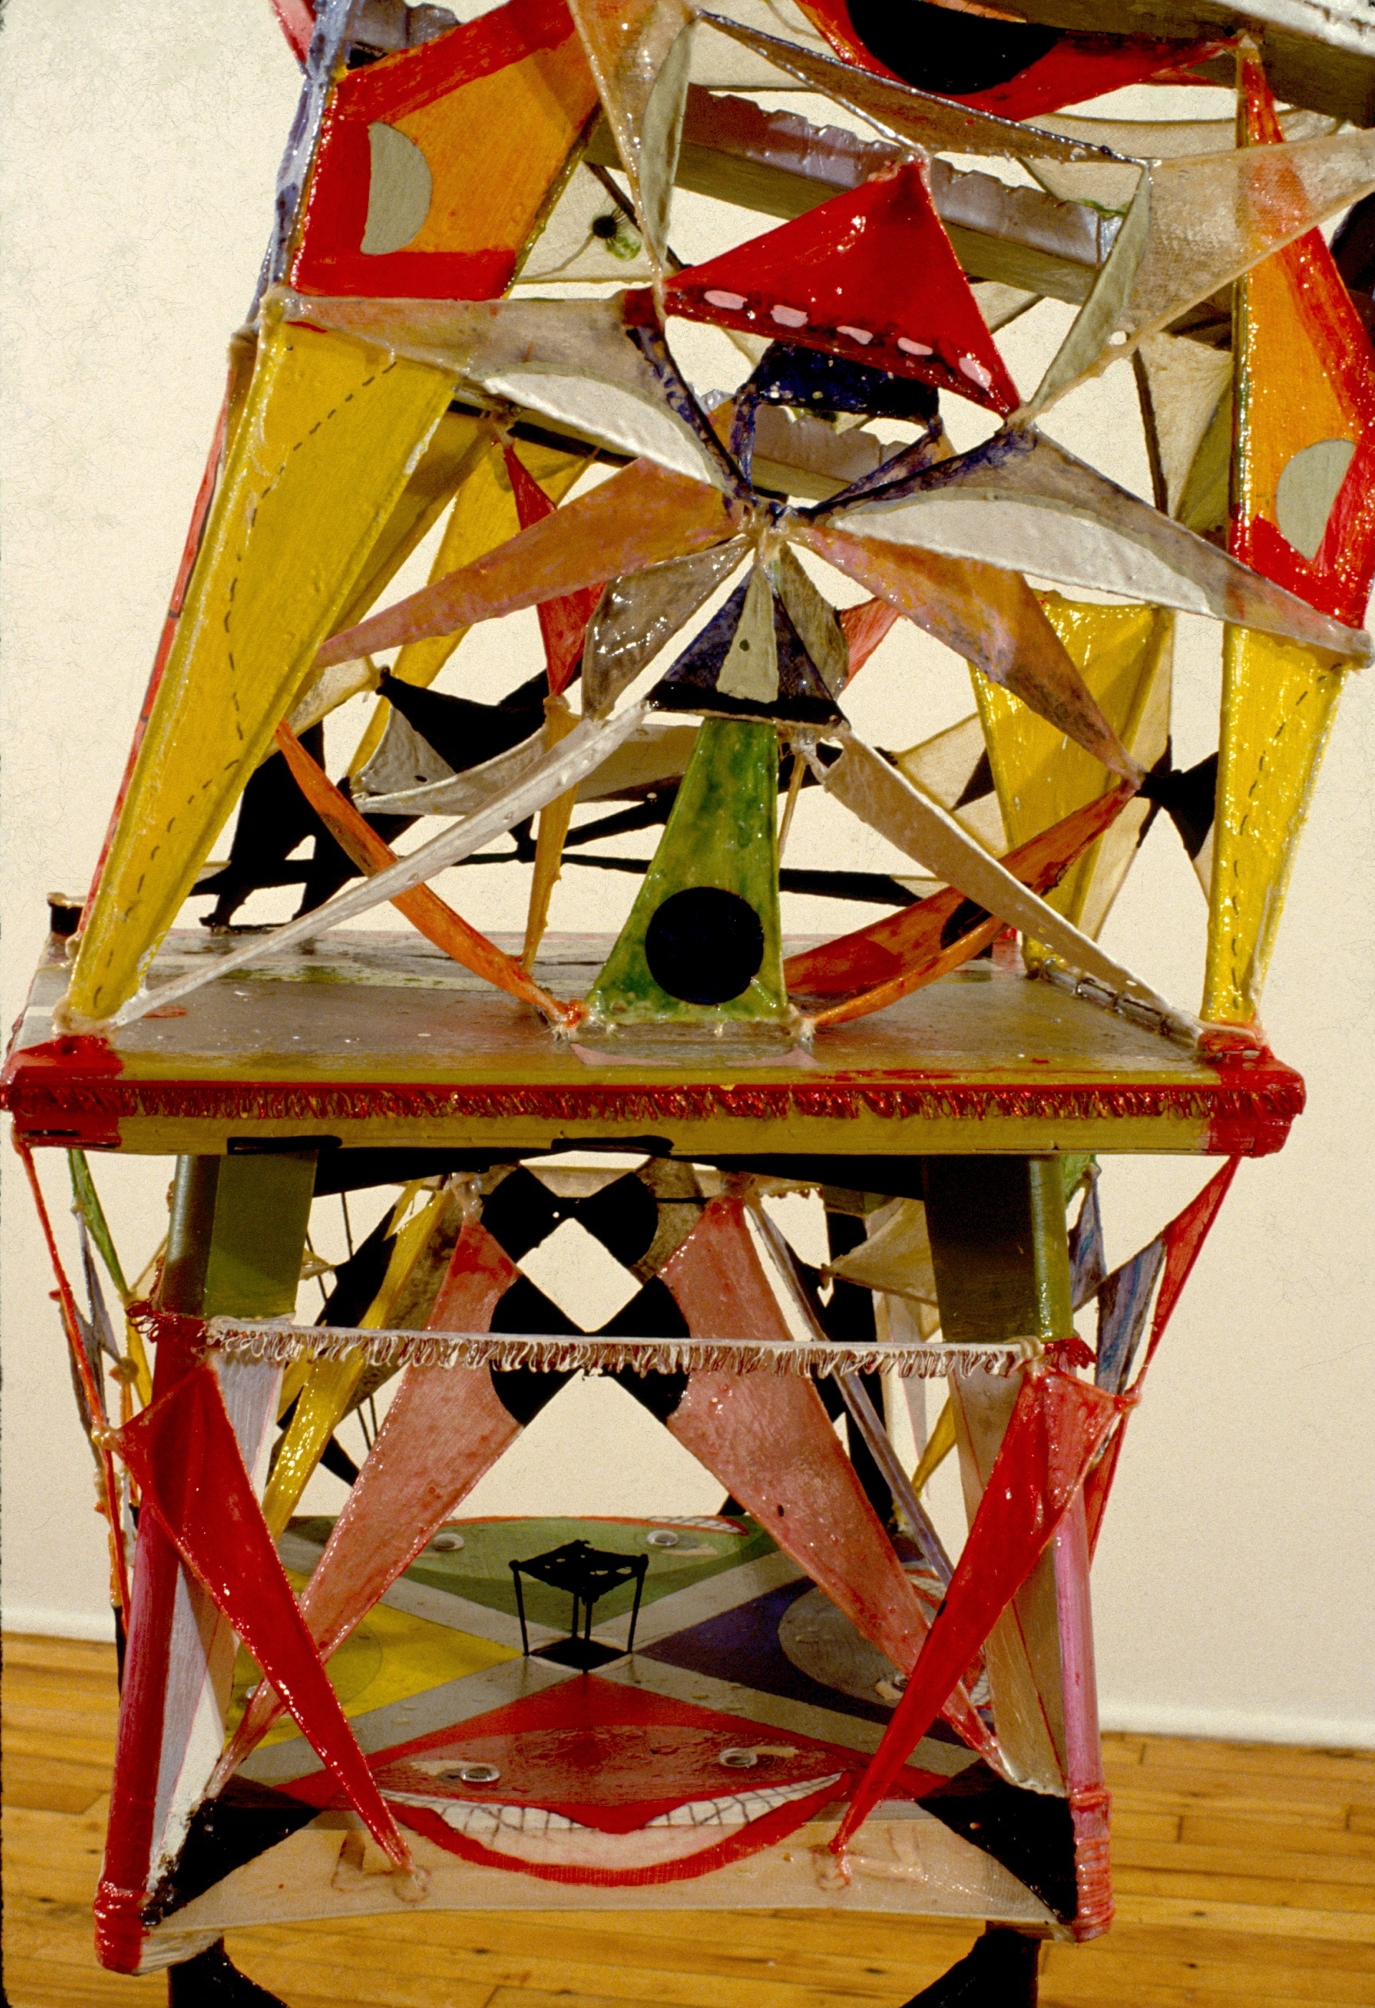 Game Show Hostage (detail),1981, 76 x 22 x 24 in.